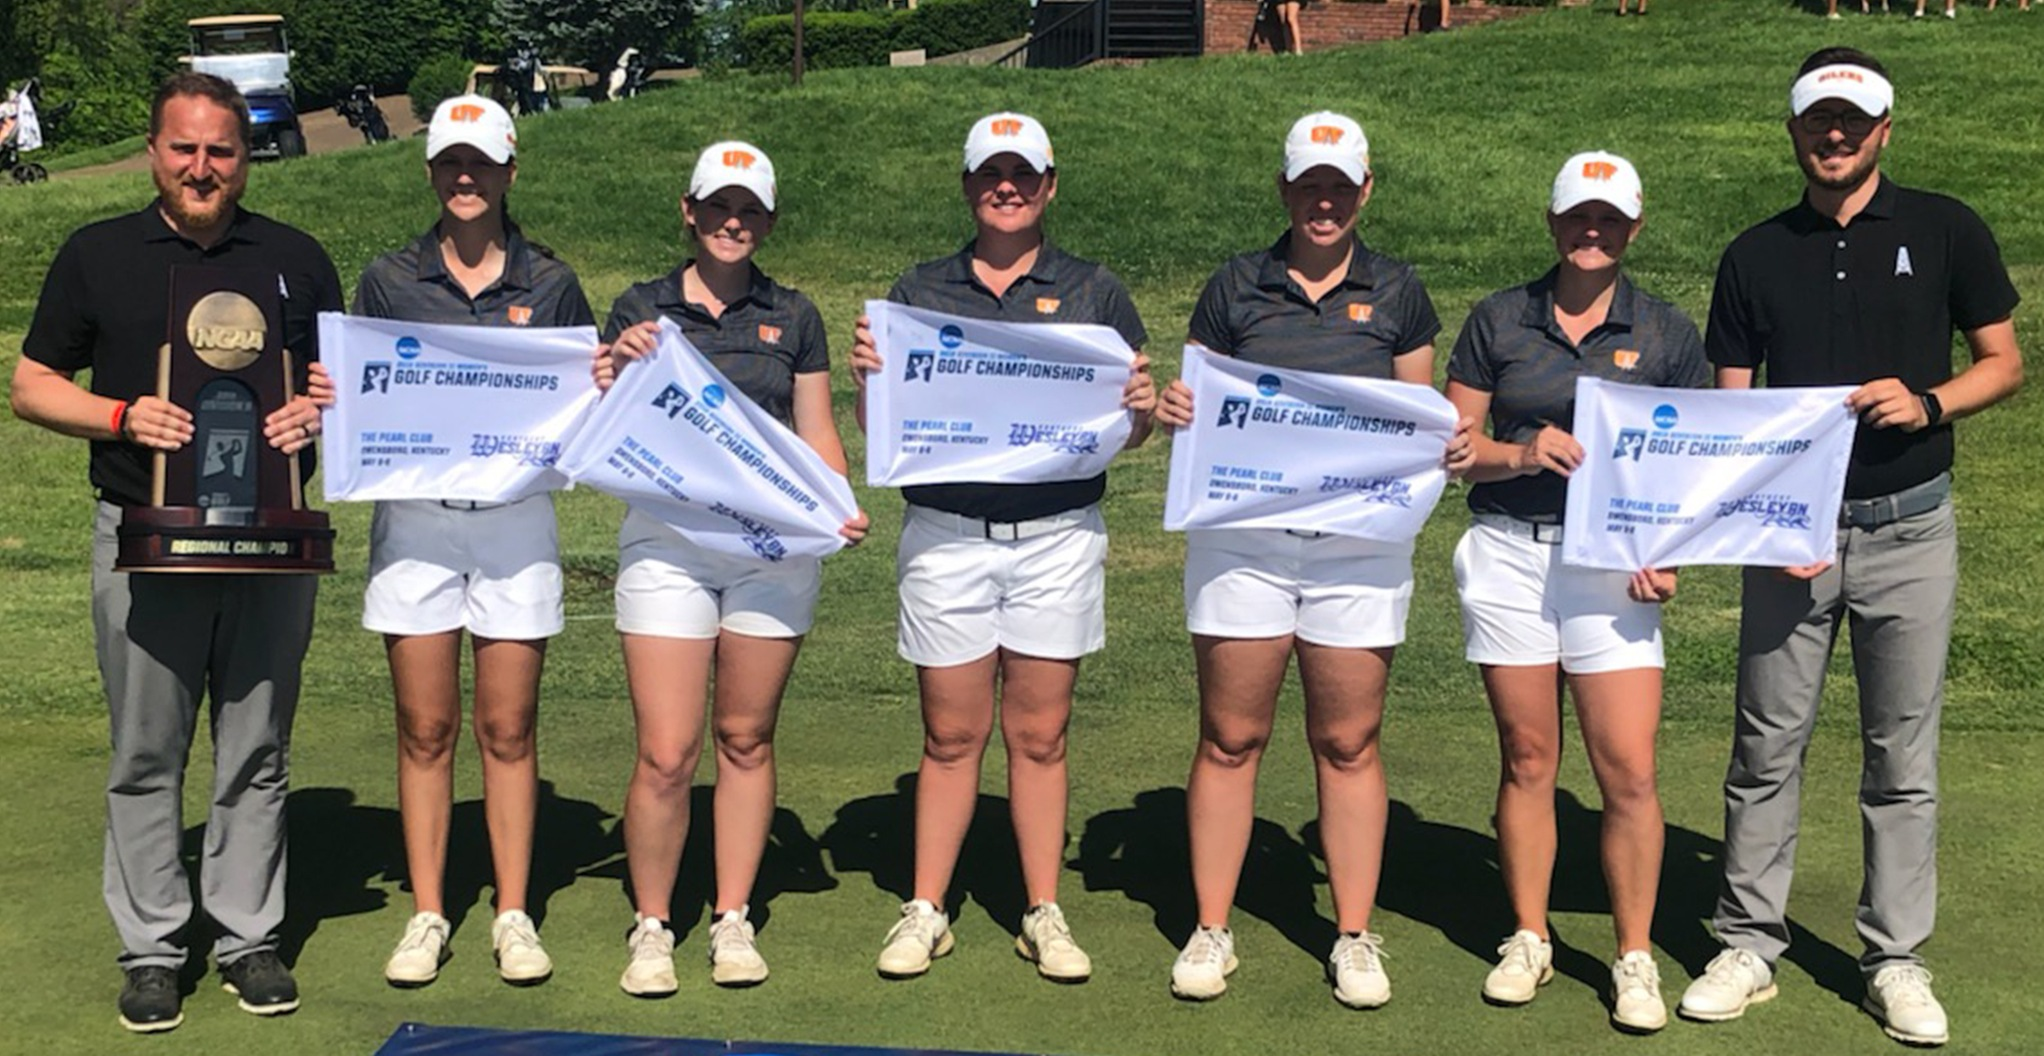 Oilers Win Regional Title | Advance to National Championship